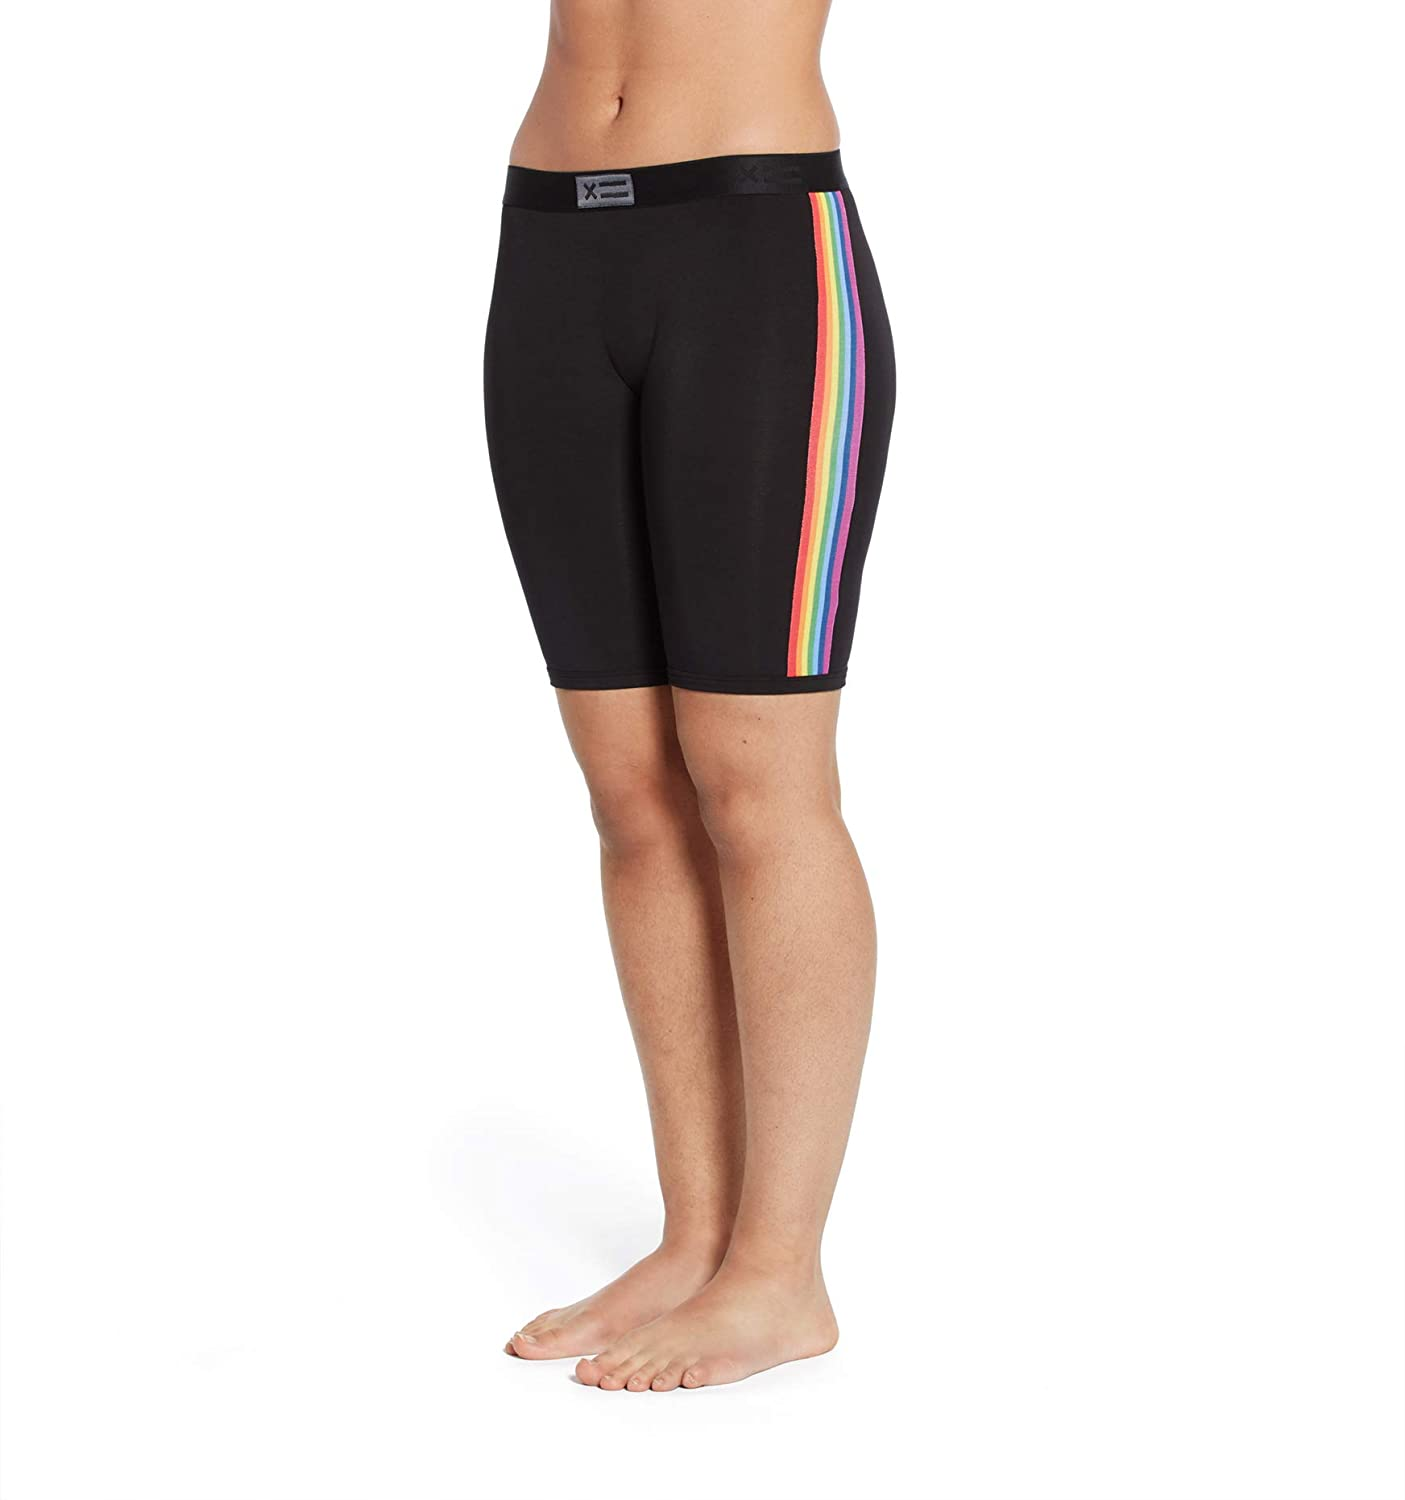 """TomboyX 9"""" Boy Short Boxer Briefs, Micromodal Ultra-Soft Underwear, All Day Comfort (XS to 4X)"""